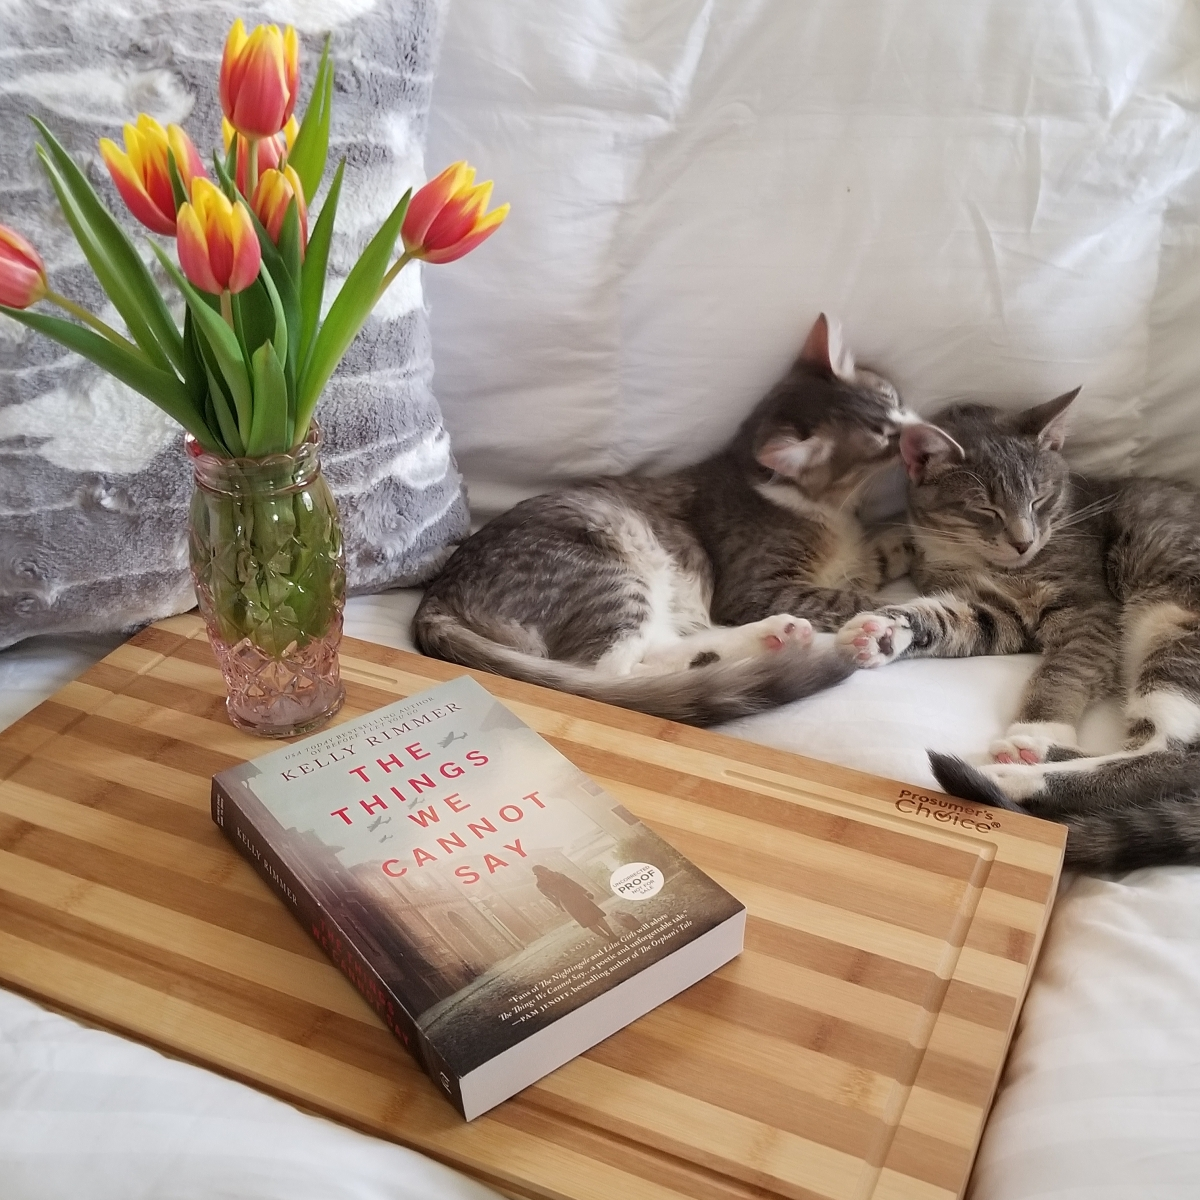 Things We Cannot Say by Kelly Rimmer #bookreview #tarheelreader #thrthingswecannotsay @kelrimmerwrites @harlequinbooks #graydonhousebooks #thethingswecannotsay